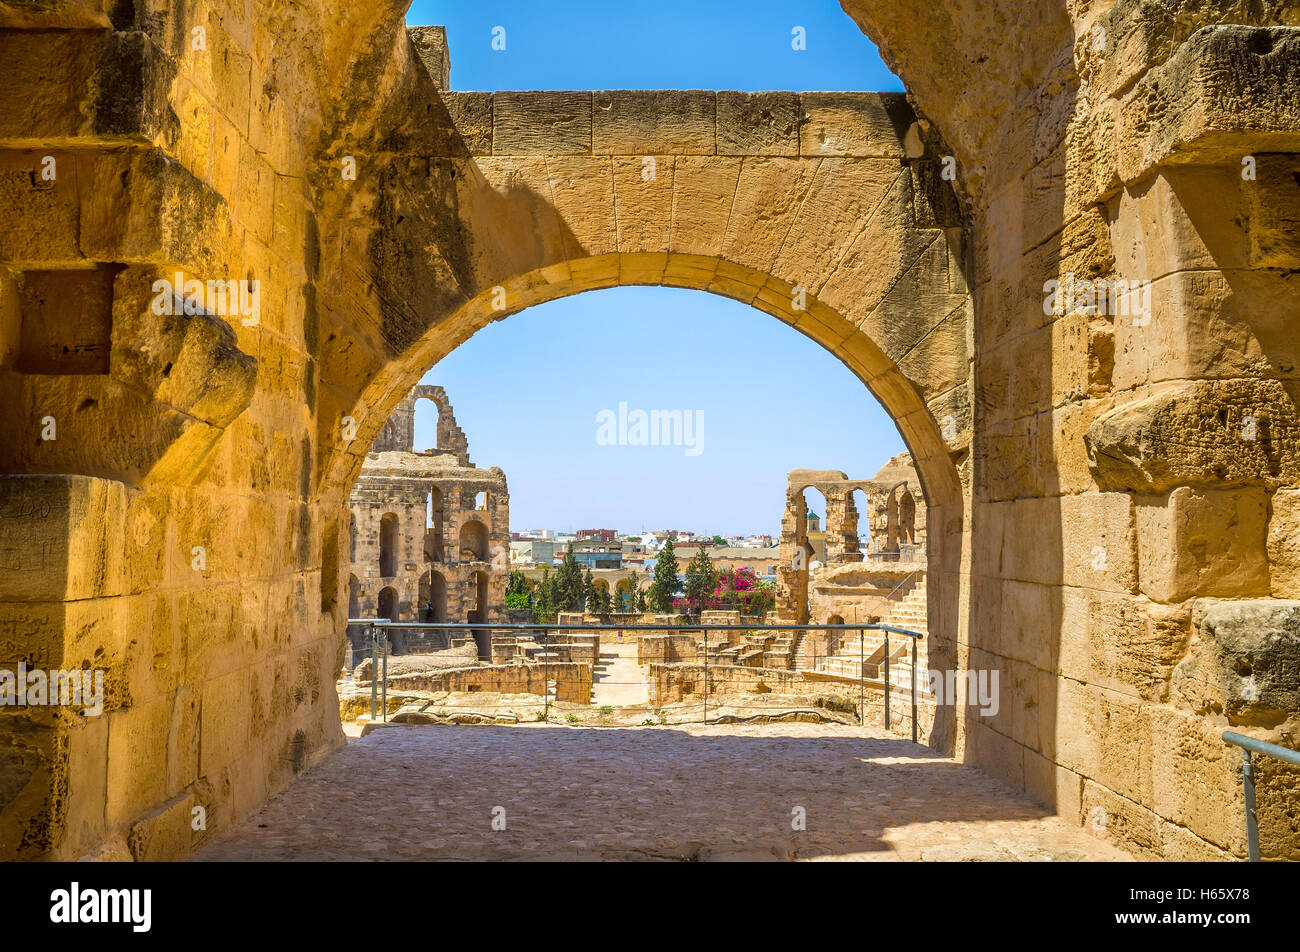 The view on the roman ruins of amphitheatre through the arch of its hall, El Jem, Tunisia. - Stock Image